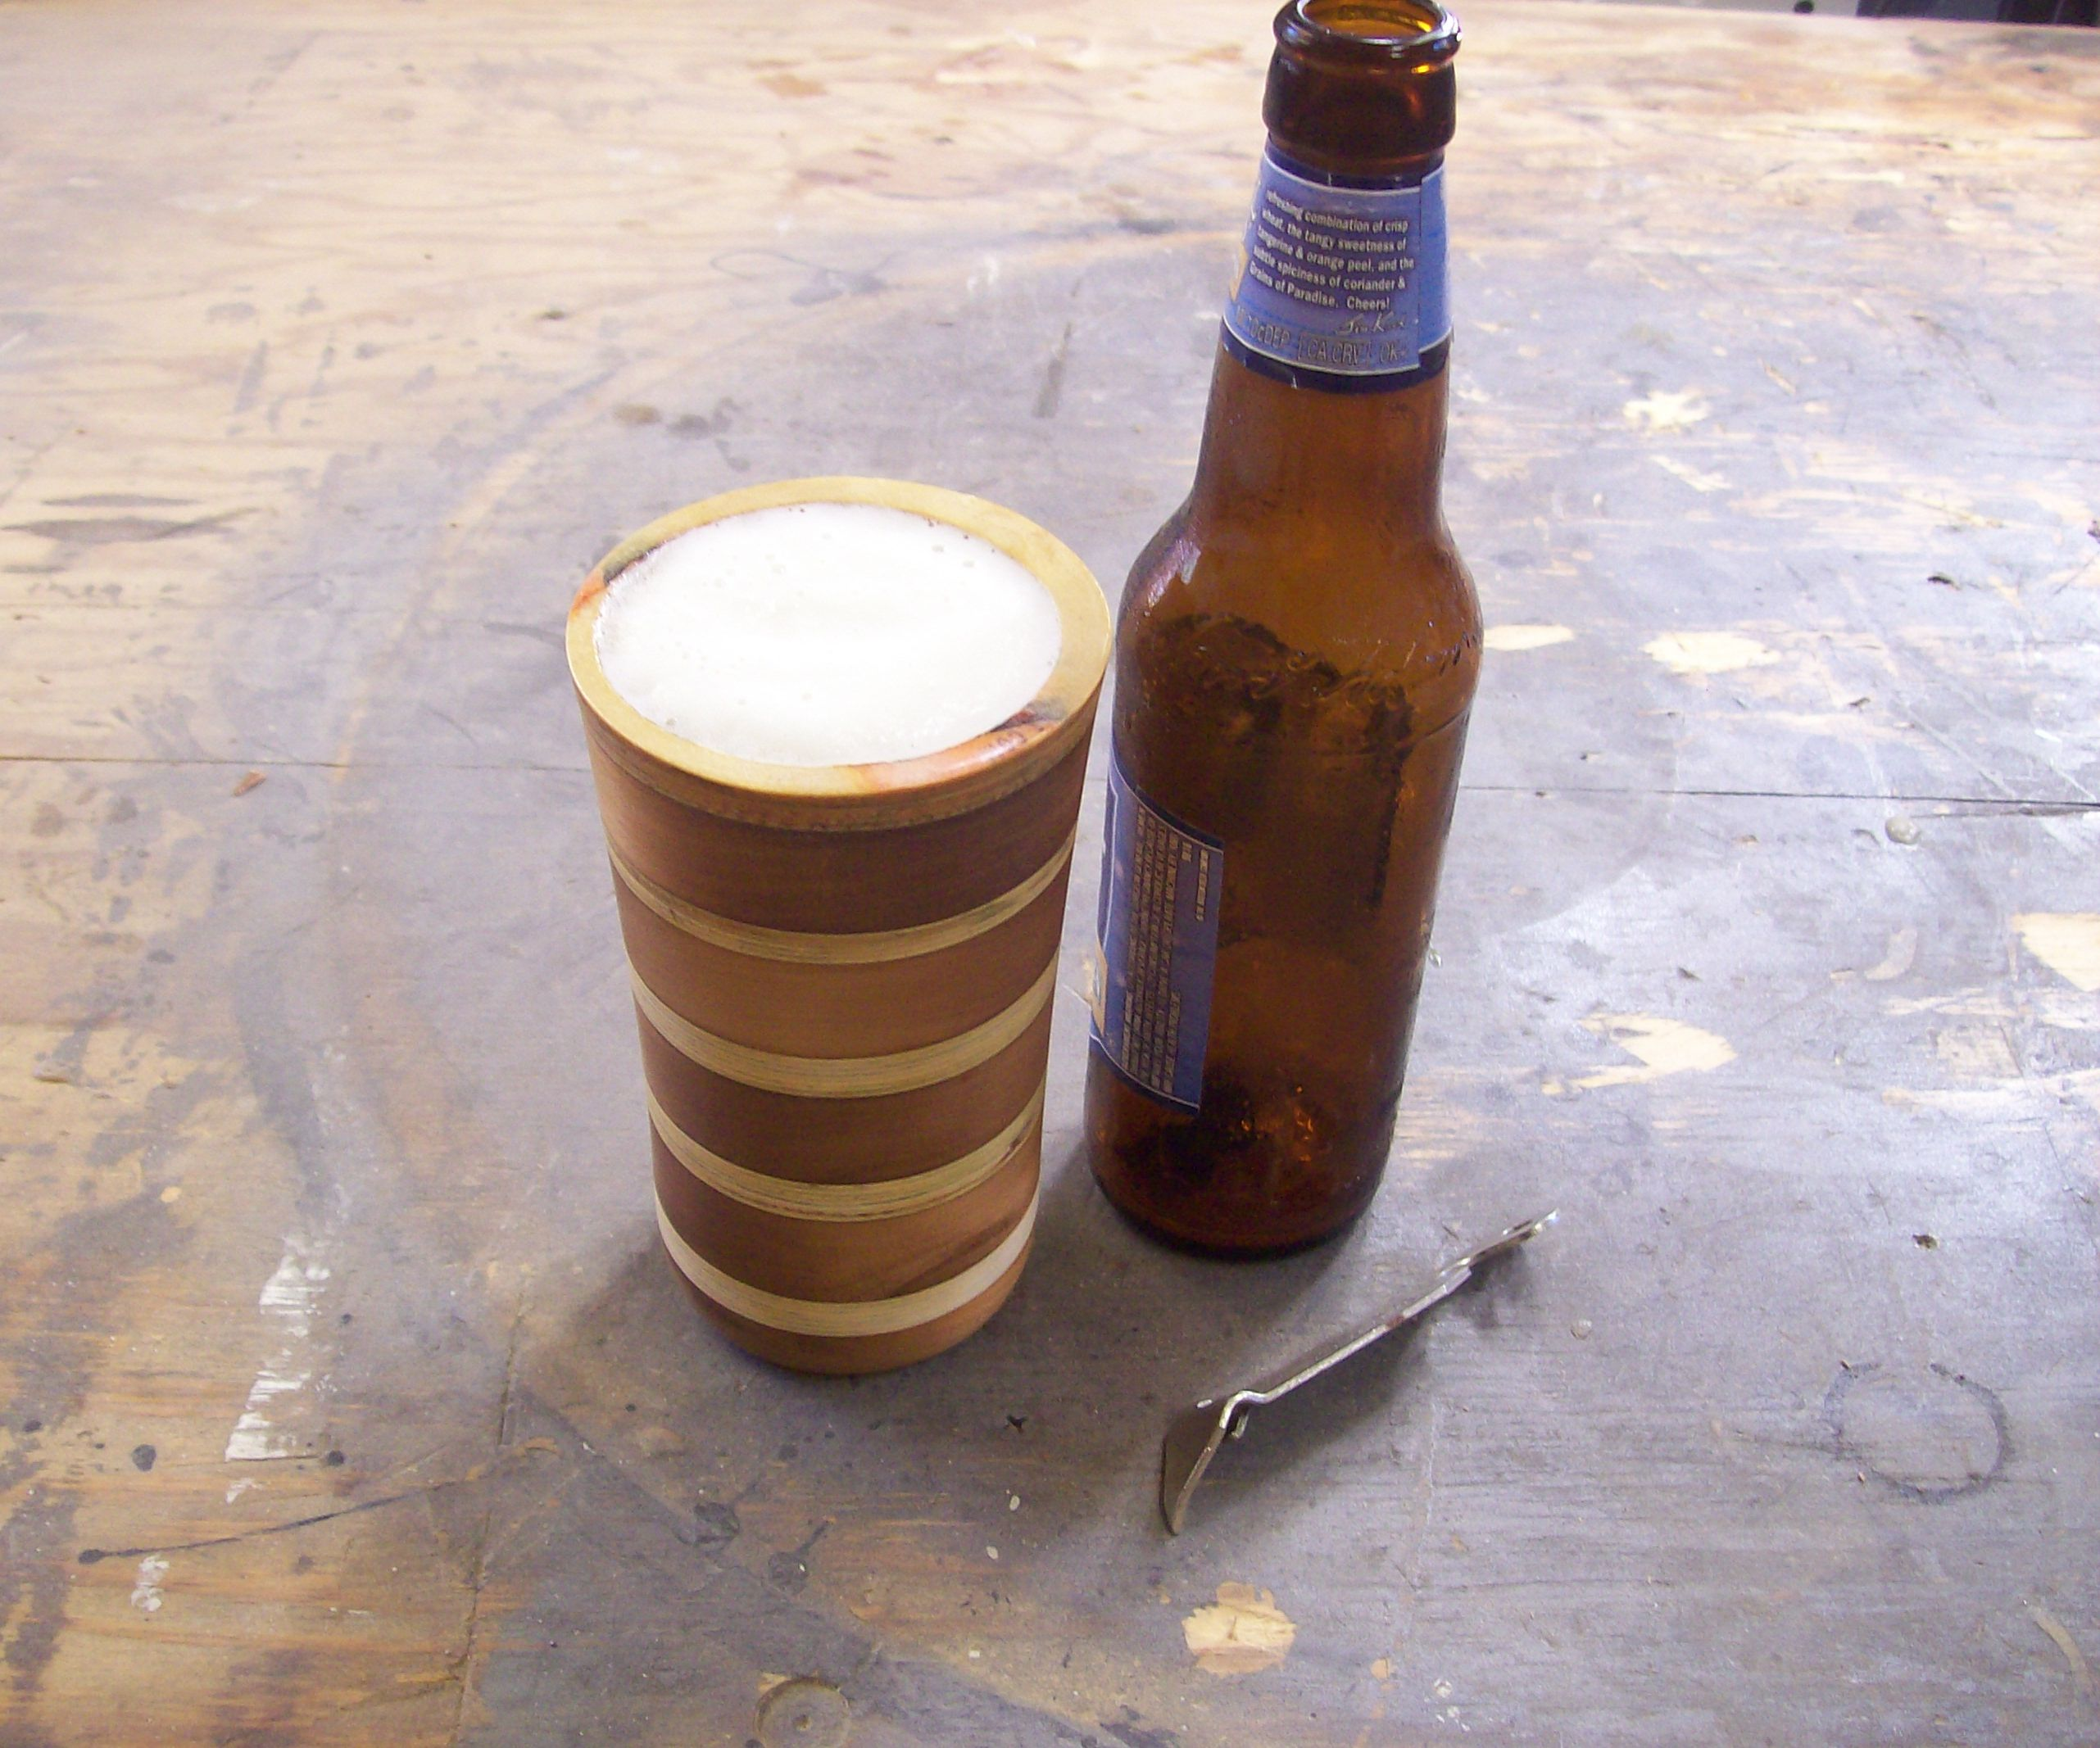 What If You Made A Beer Mug From Recycled Coasters